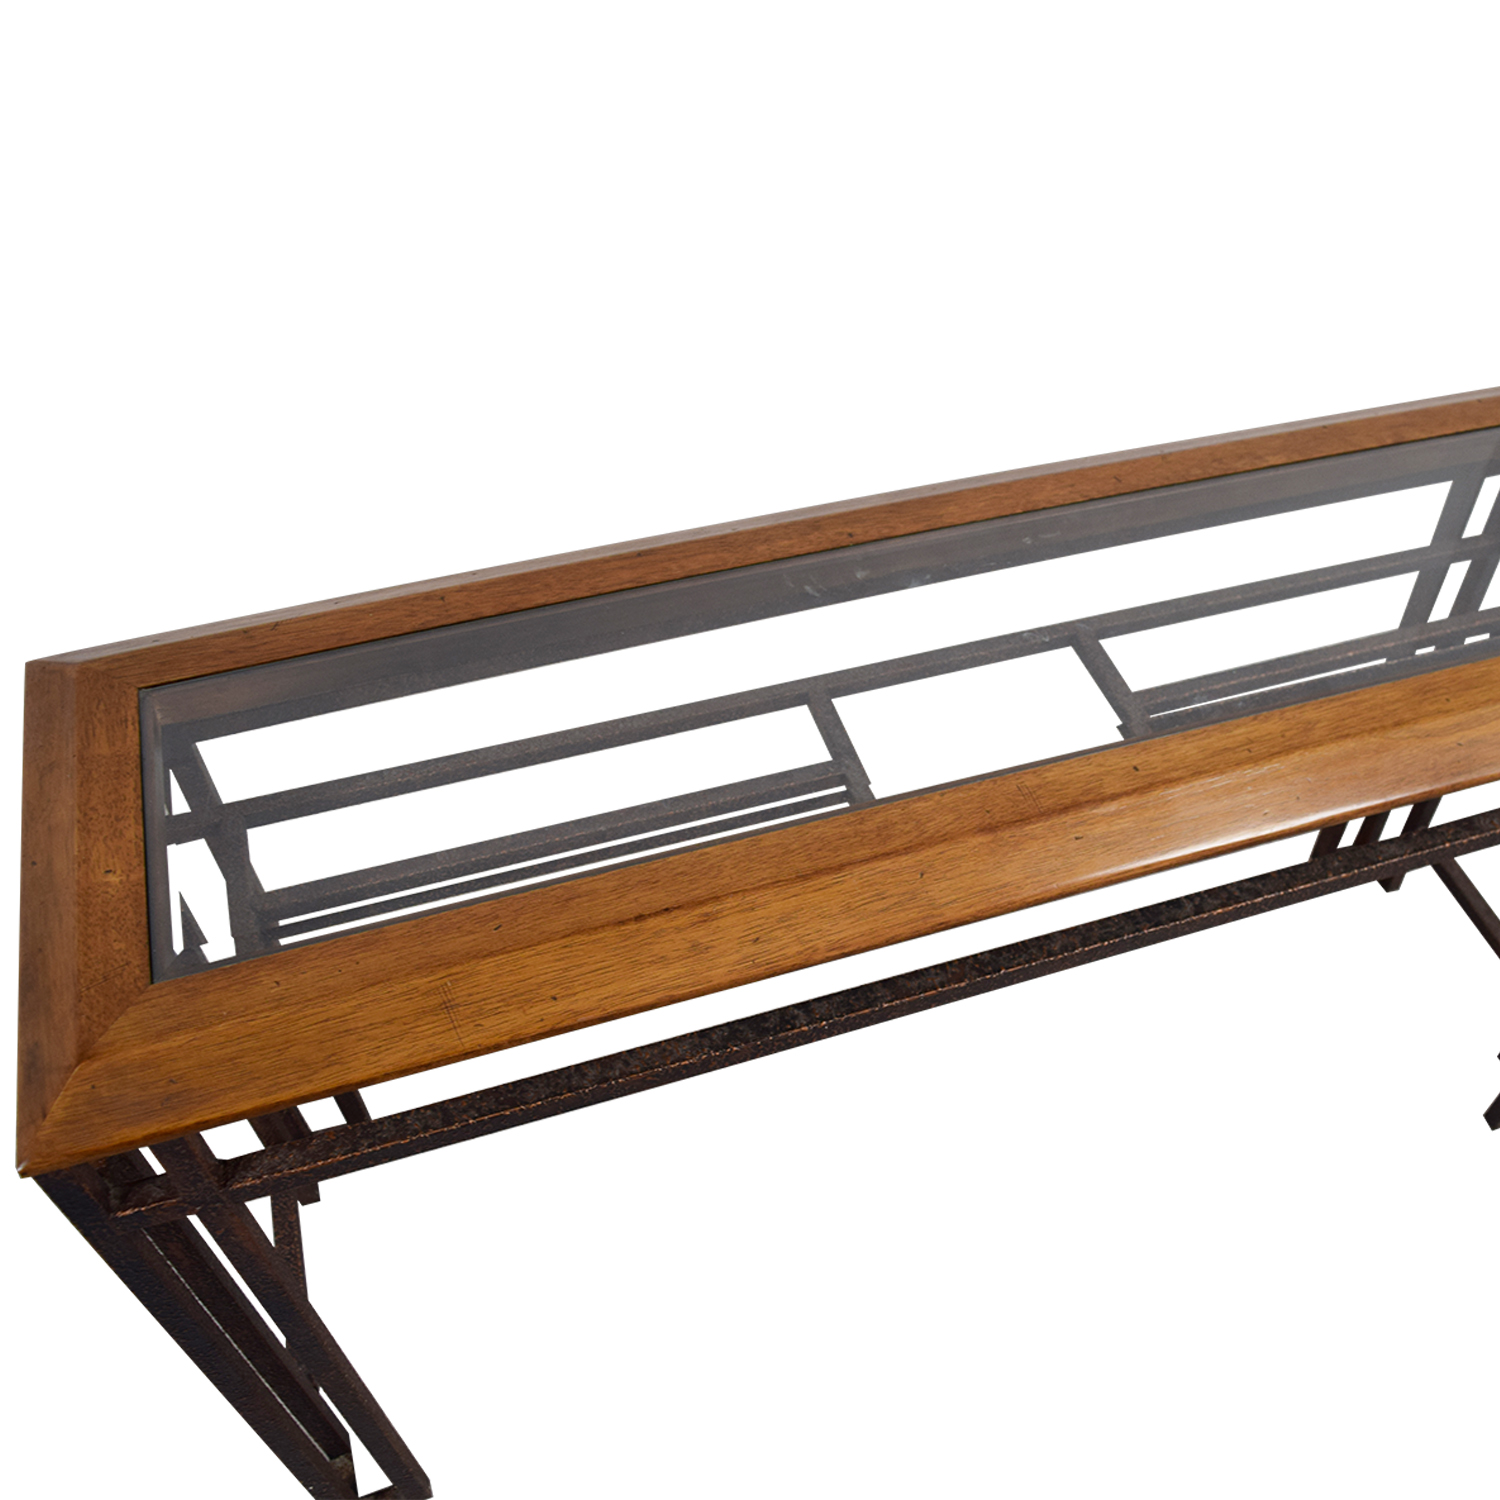 Rustic Brass Wood and Glass Console Table Pine Wood